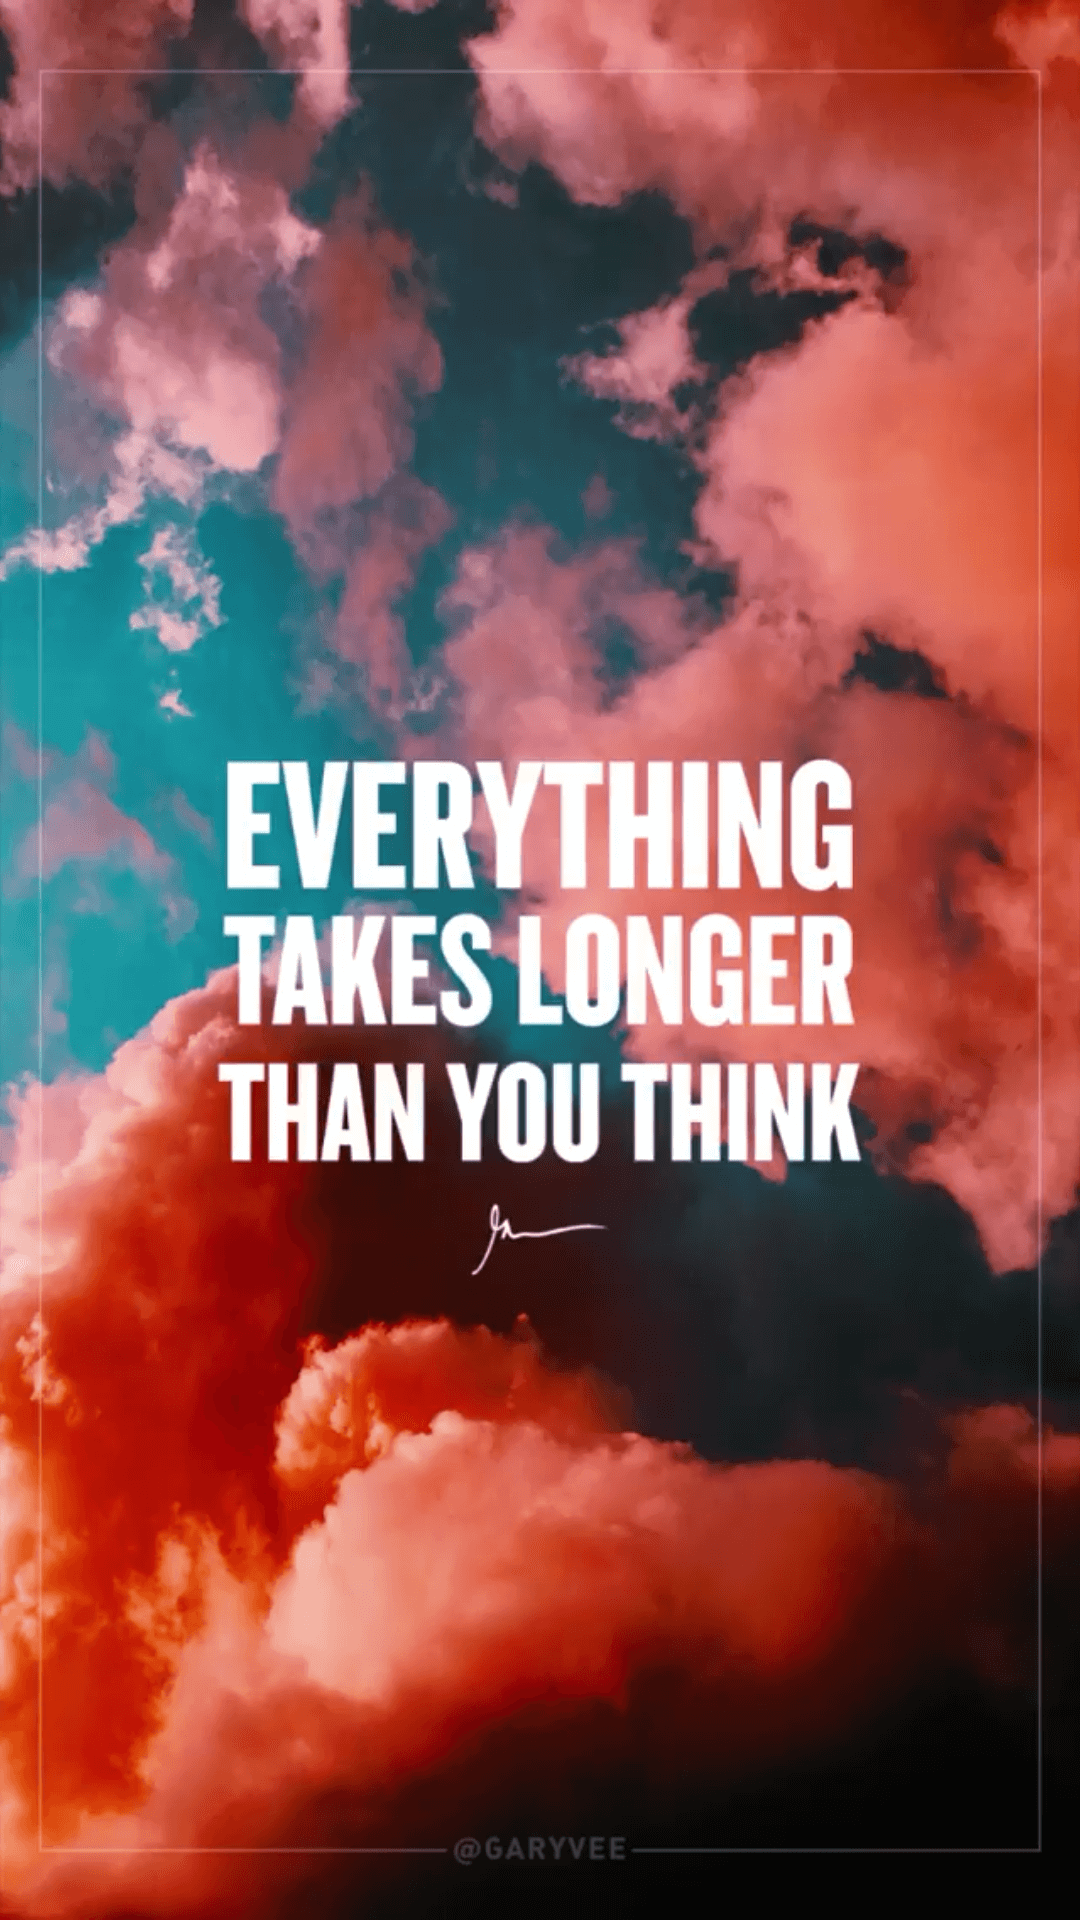 Everything Takes Longer Than You Think GaryVeeWallpapers.com